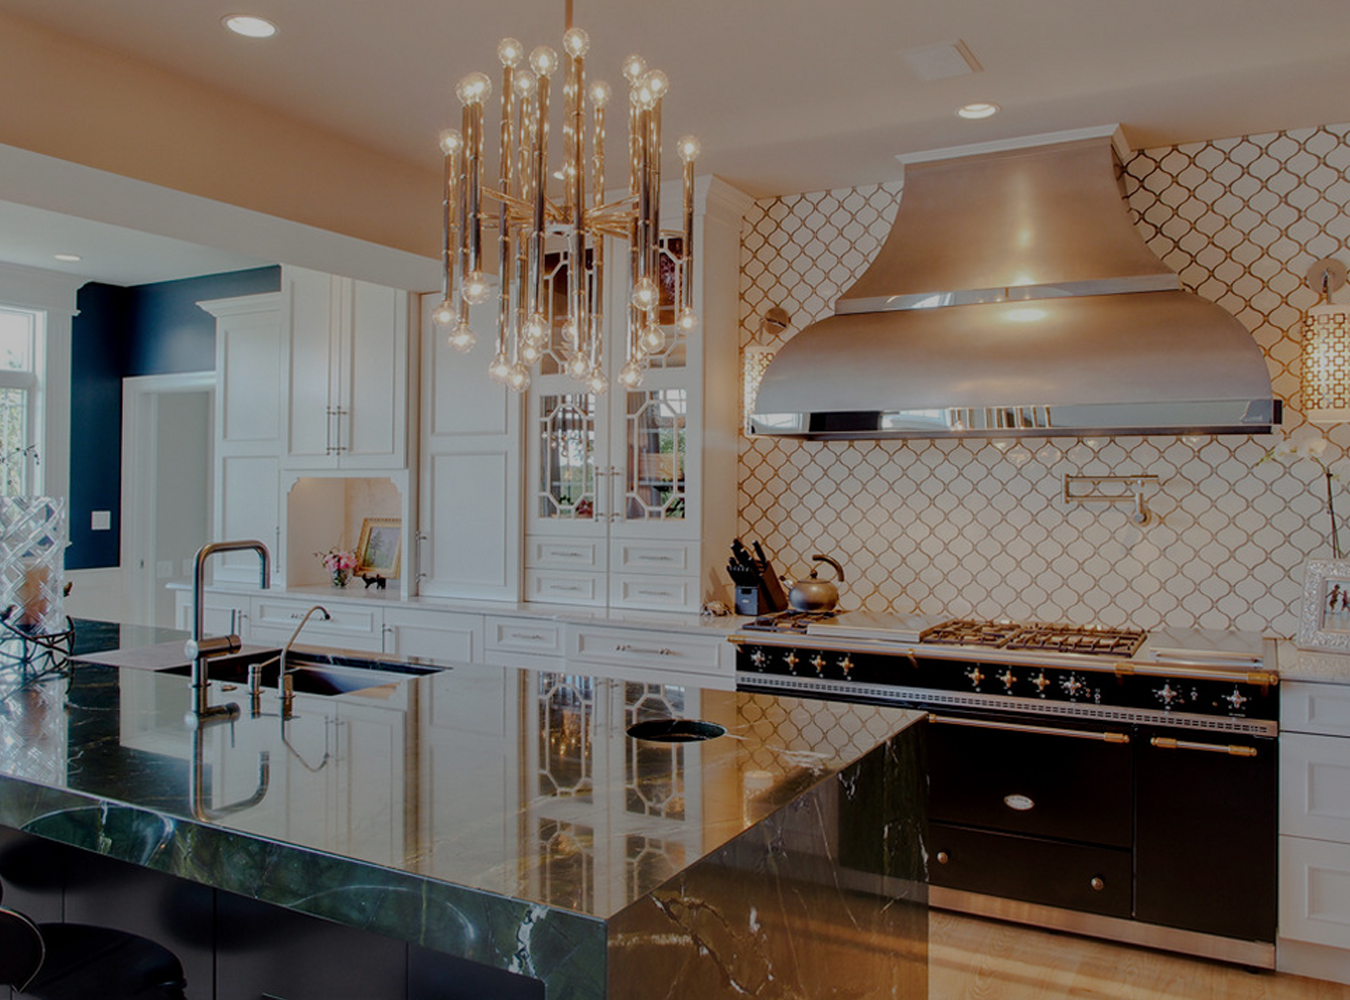 Kitchen design contractor Lehigh Valley